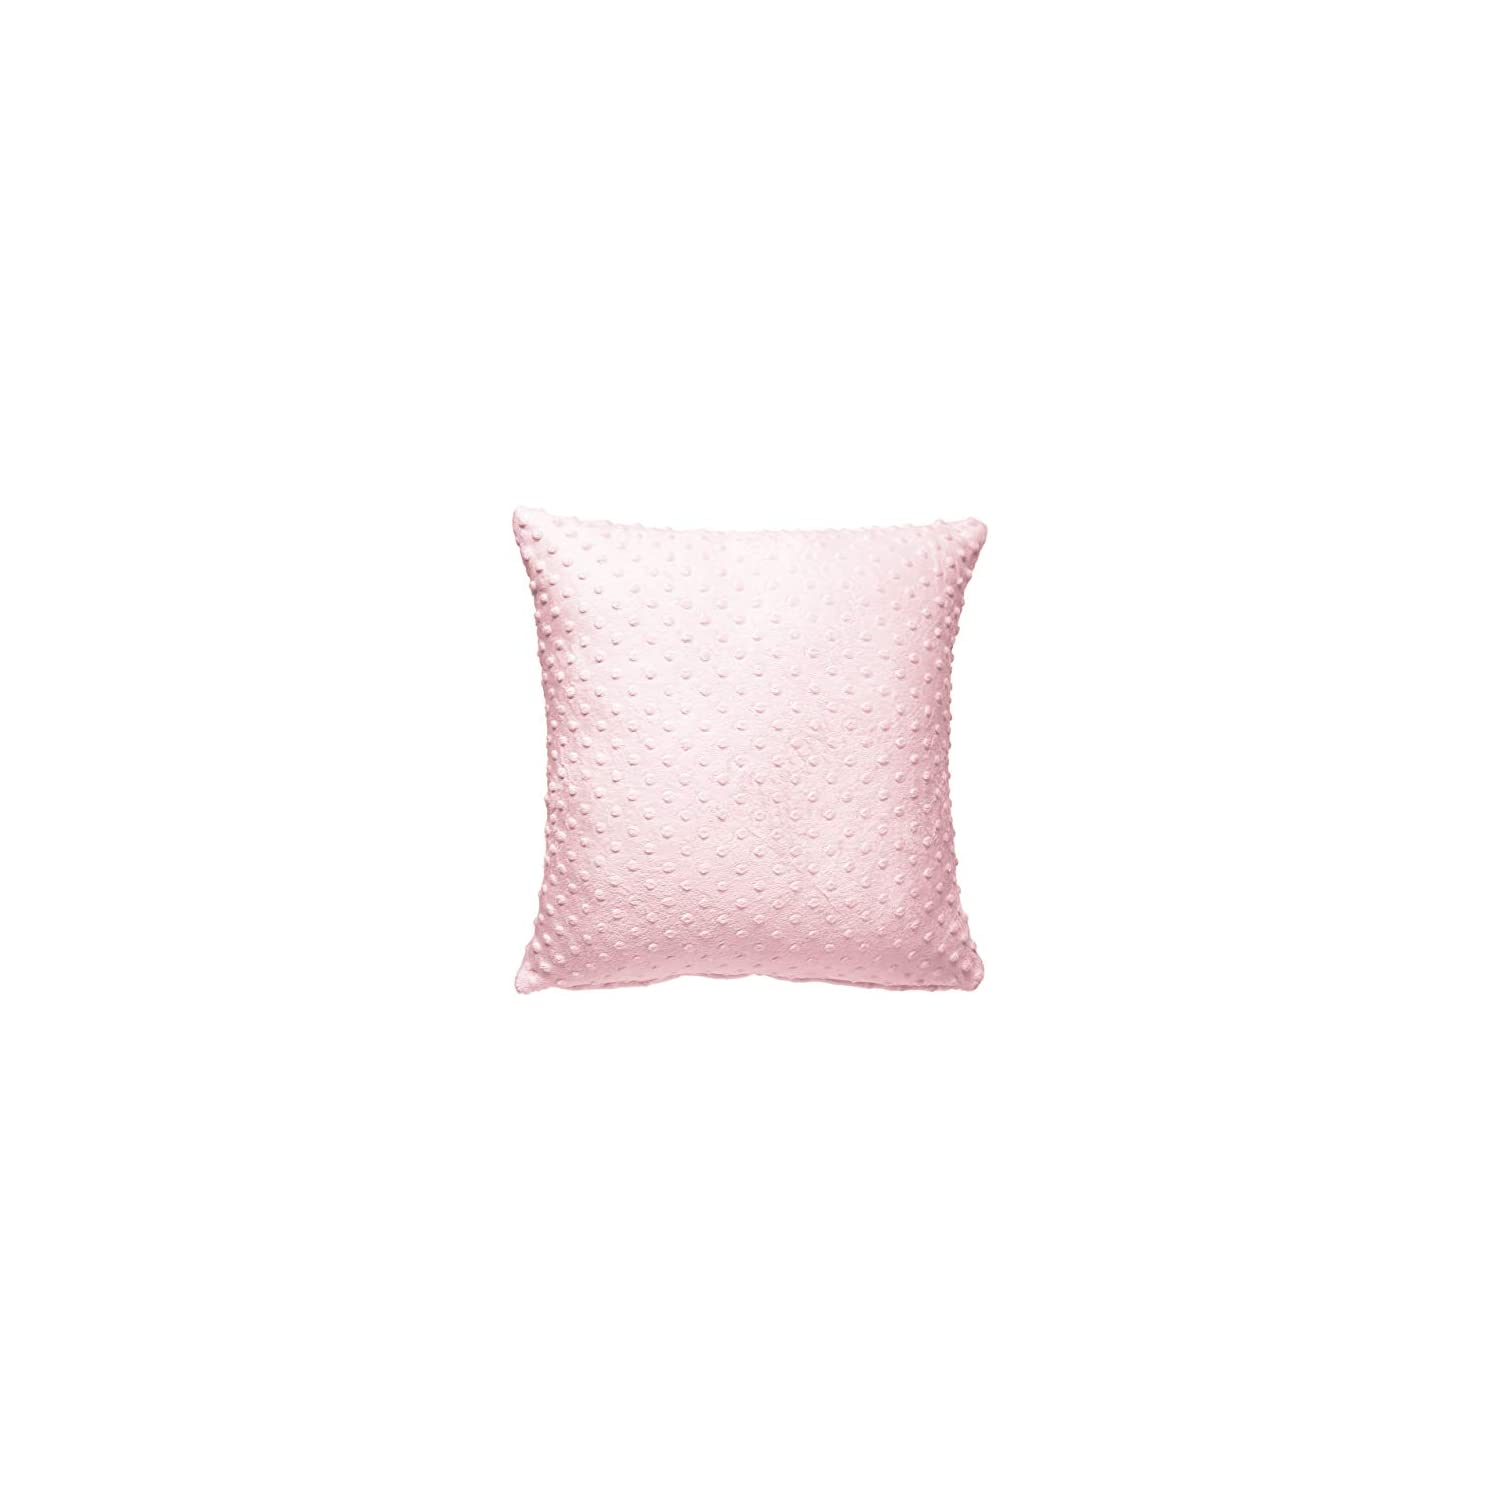 Baby Doll Bedding Heavenly Soft 2 Piece Crib Throw Pillow Cover, Pink